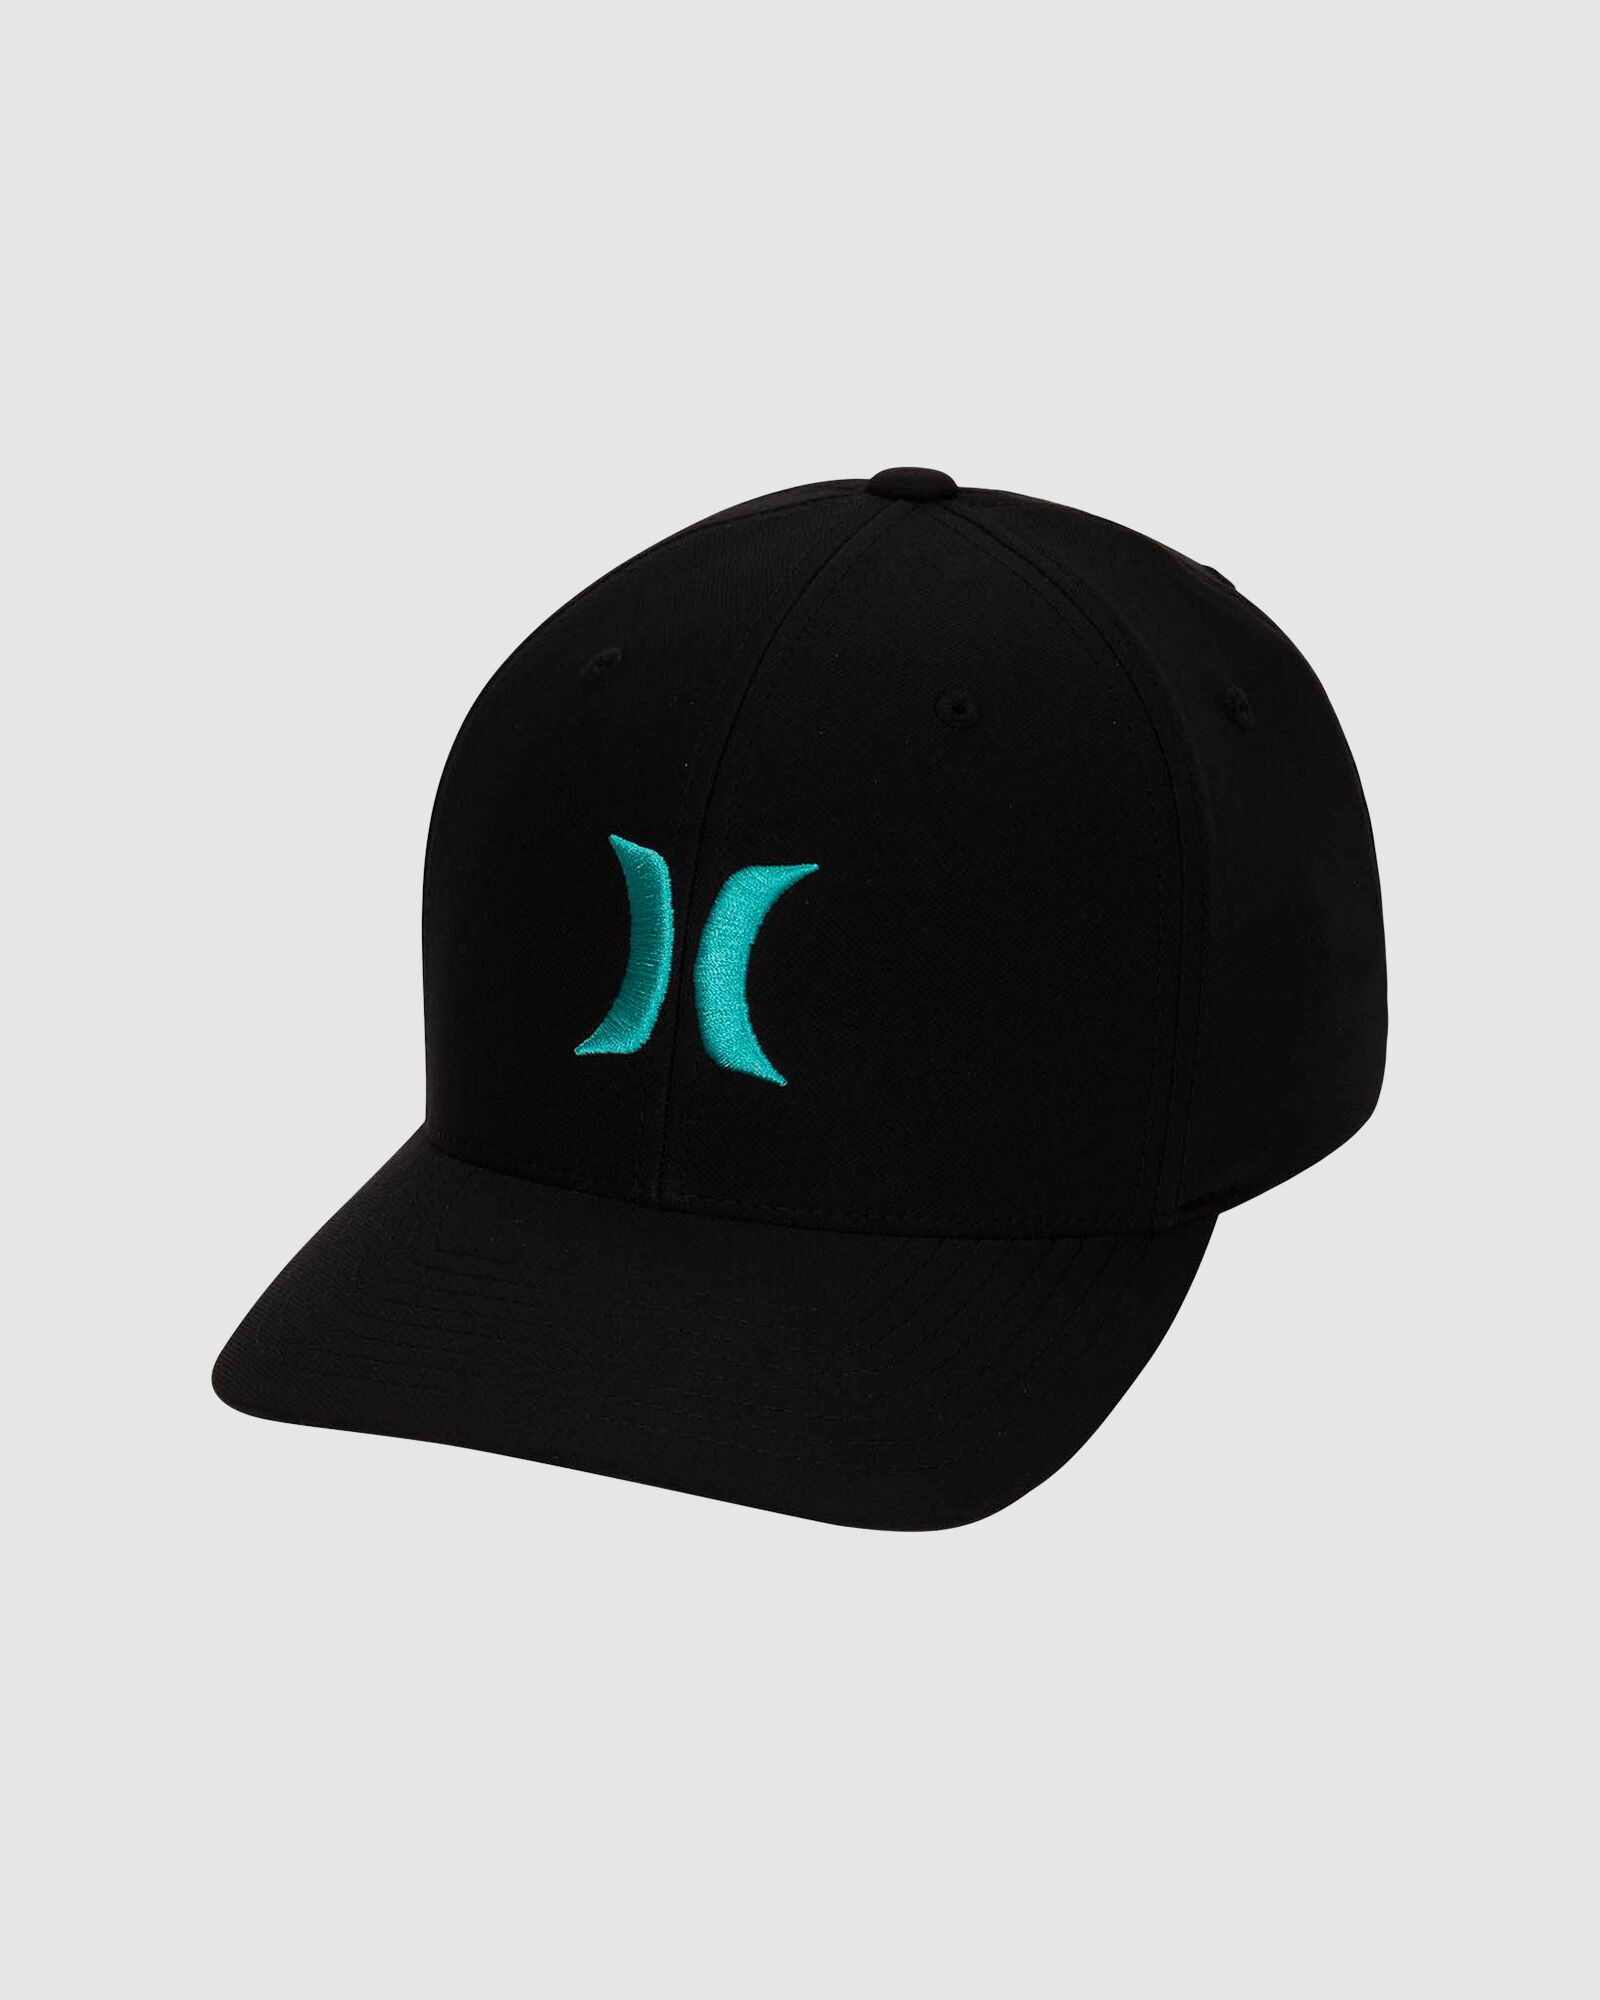 Hurley Dri-Fit One and Only Hat - Black / NEPTUNE GREEN